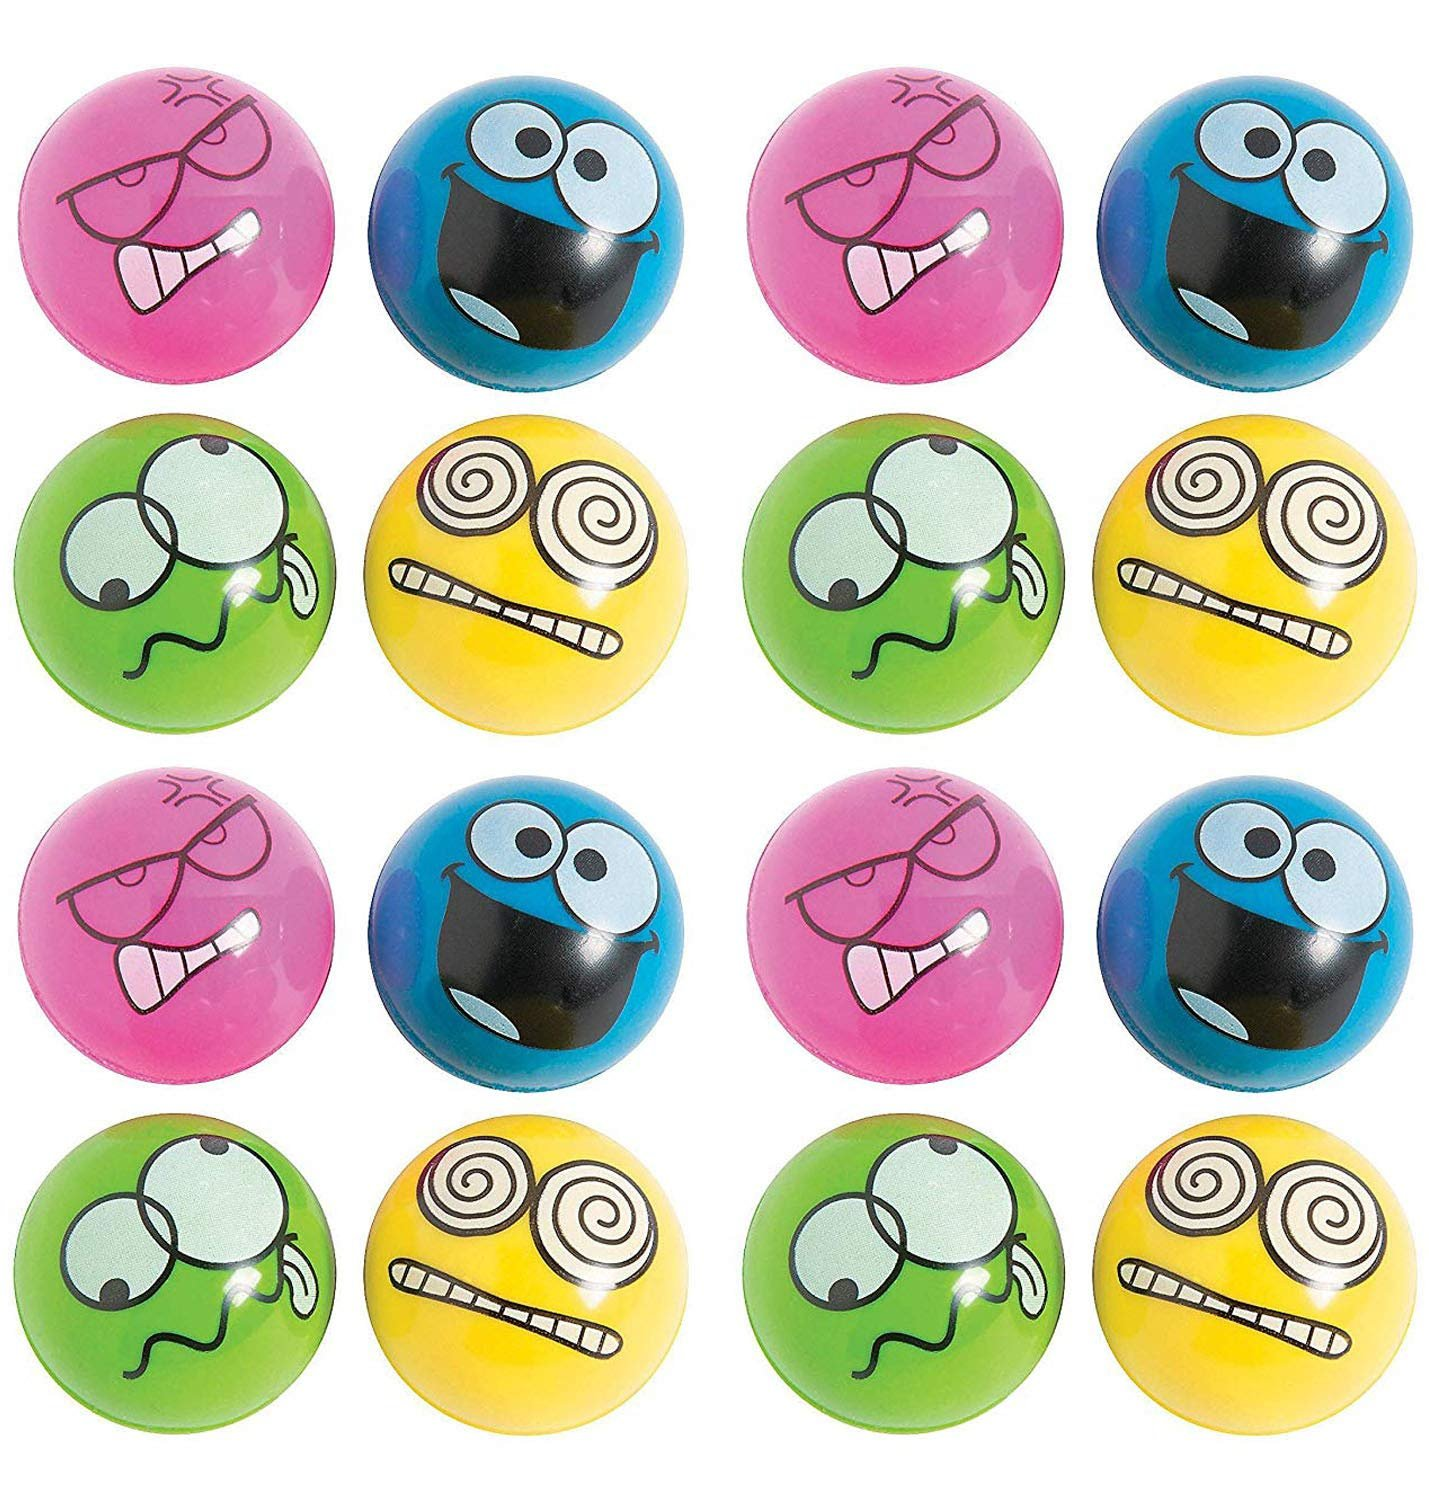 Rubber Emotion Bouncing Balls 1.75 Inches - Pack Of 16 – Assorted Colors Cool Silly Face Bounce Balls – For Kids Great Party Favors, Bag Stuffers, Gift, Prize, Piñata Fillers - By Kidsco